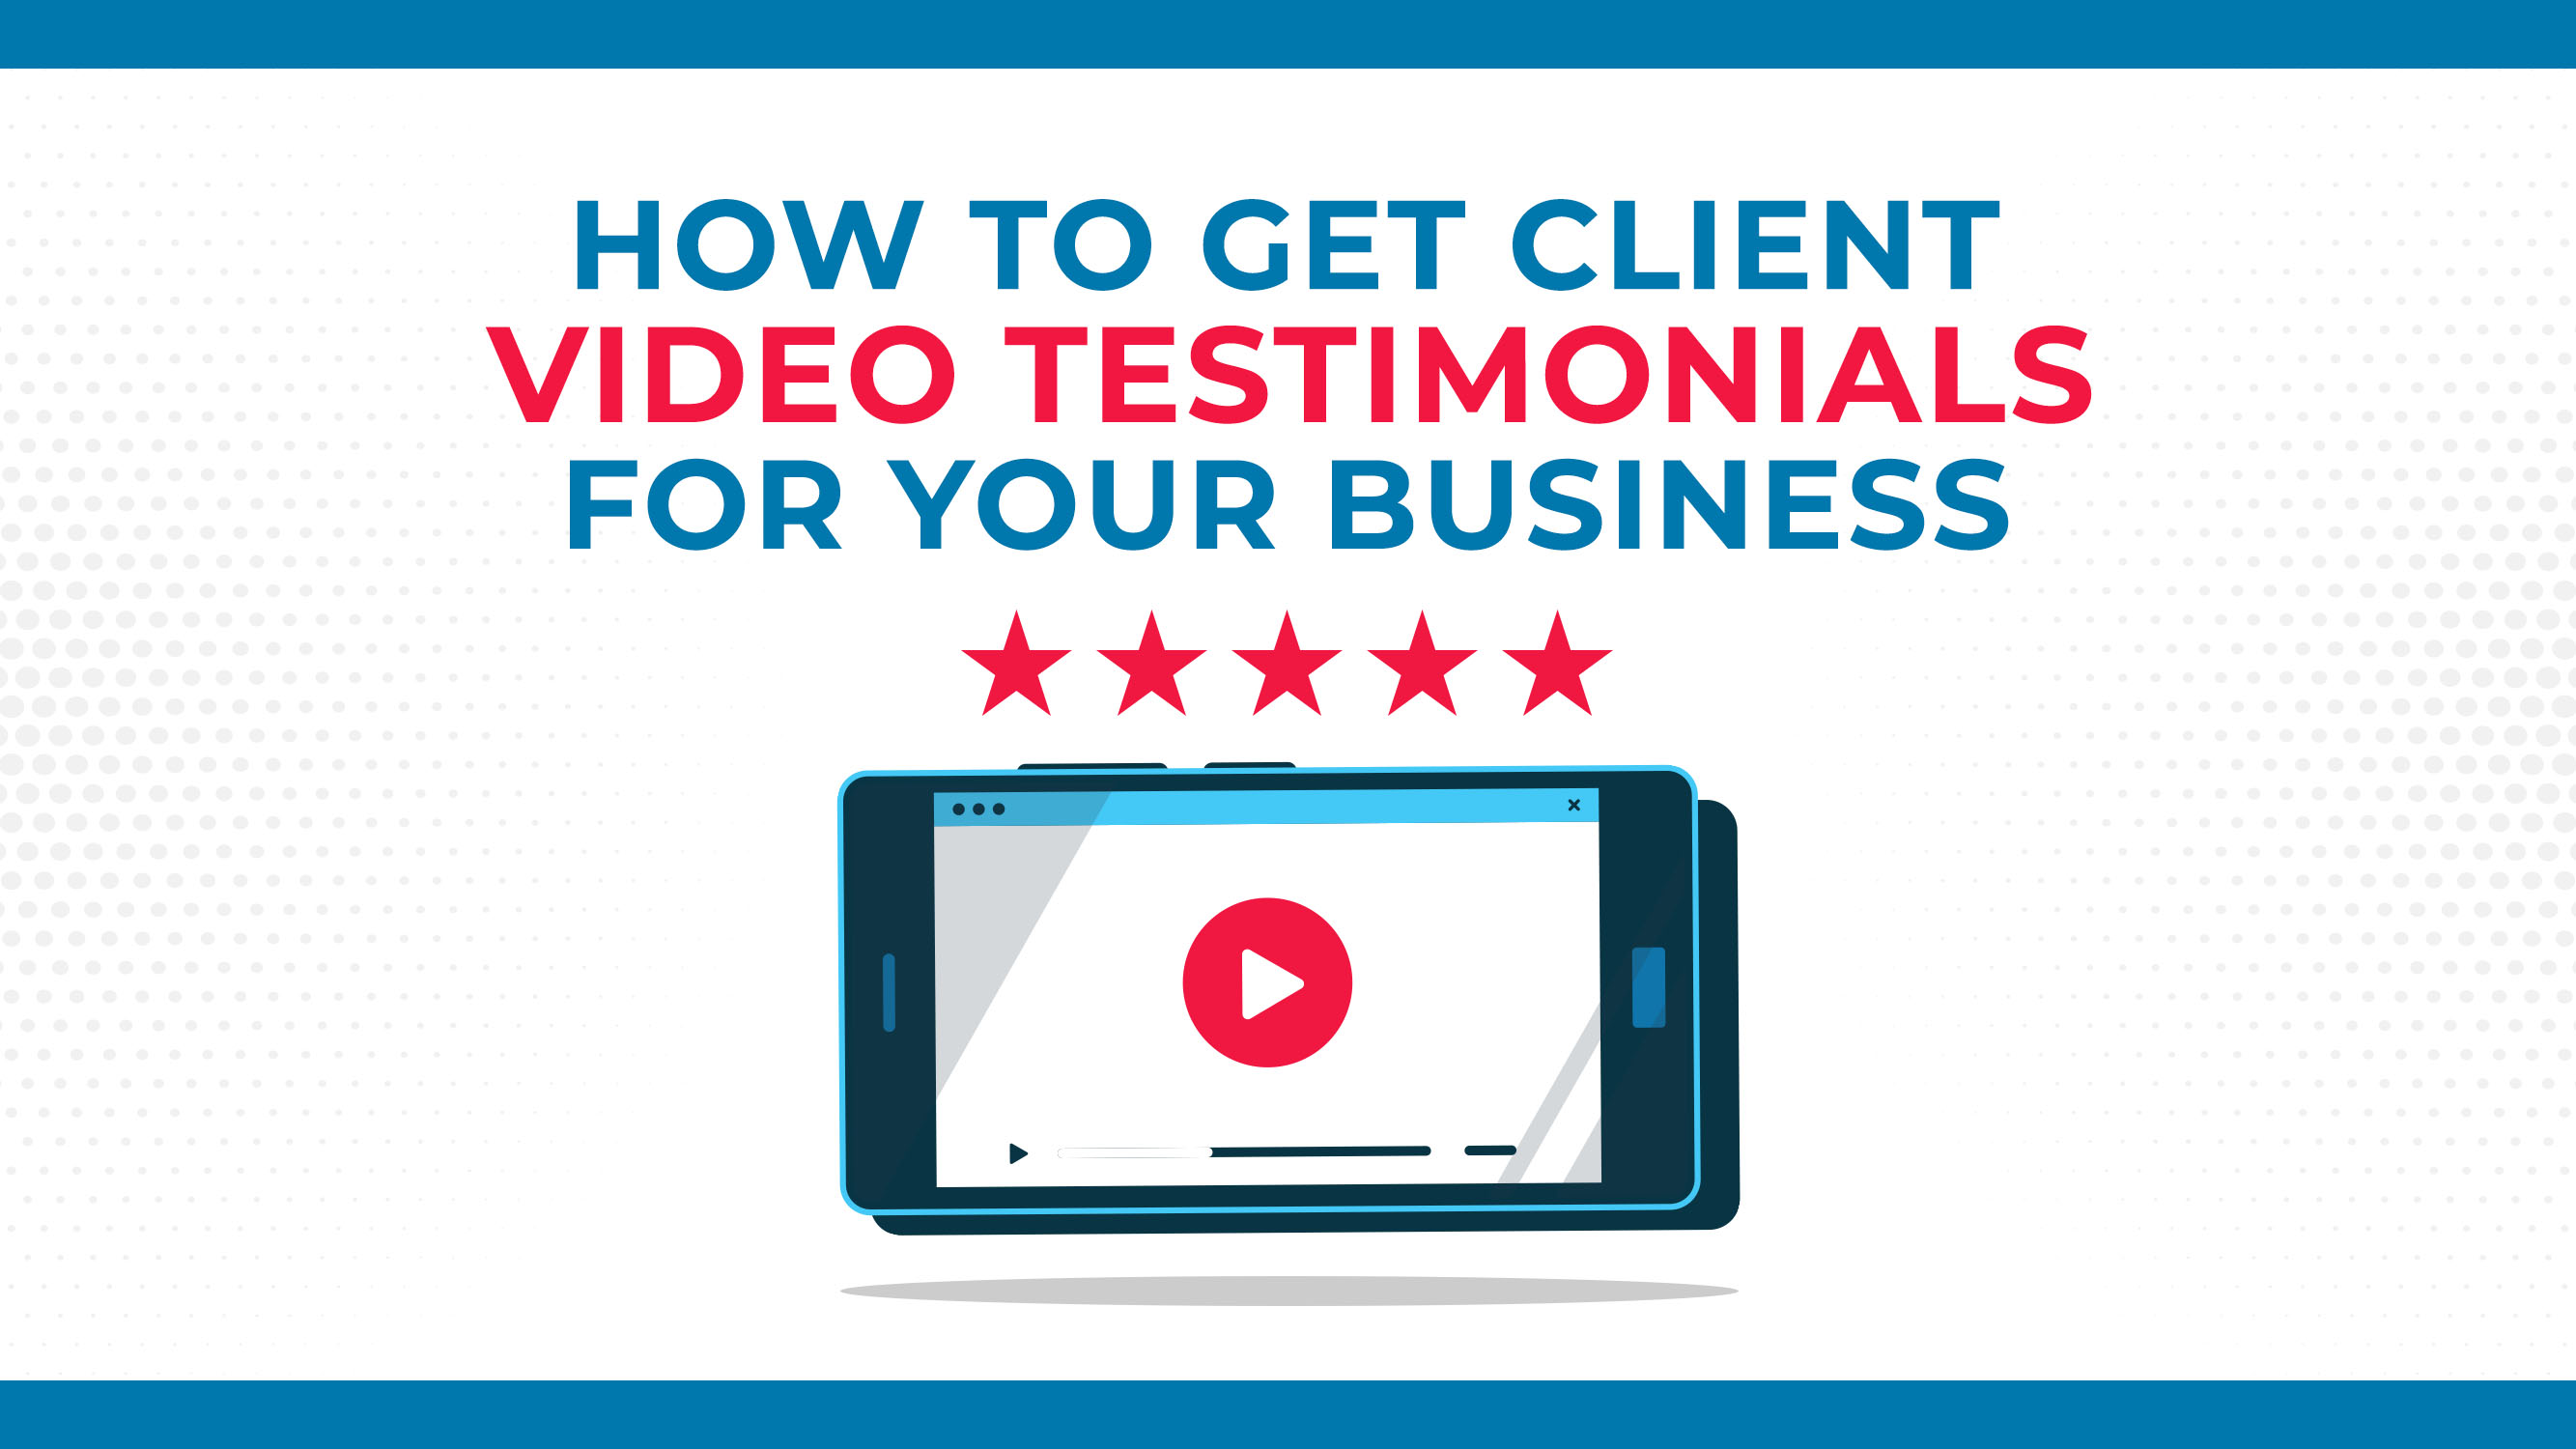 How To Get Client Video Testimonials For Your Business